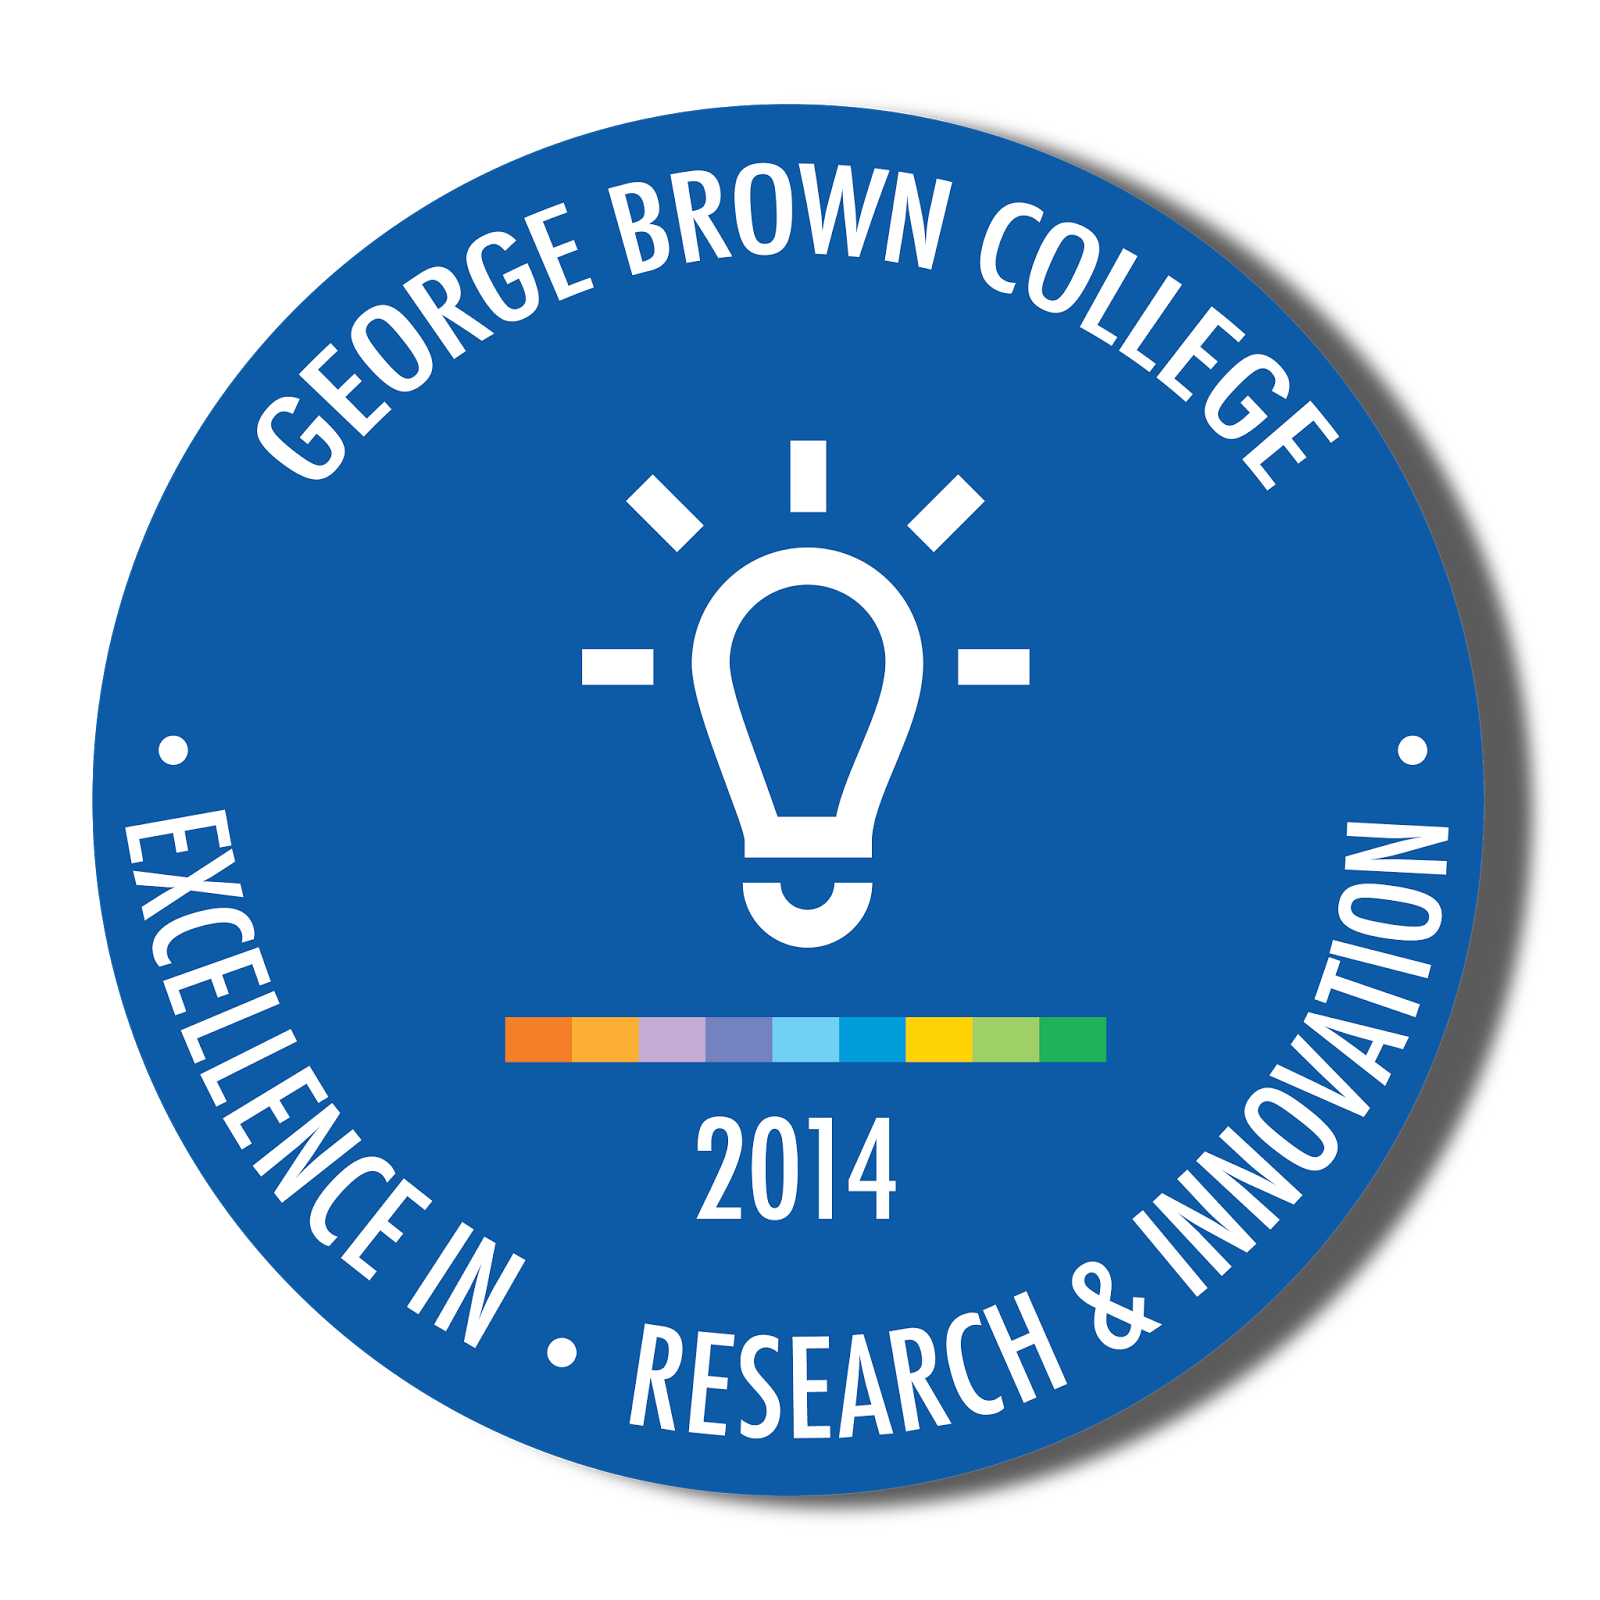 George Brown College Excellence in Research and Innovation digital badge